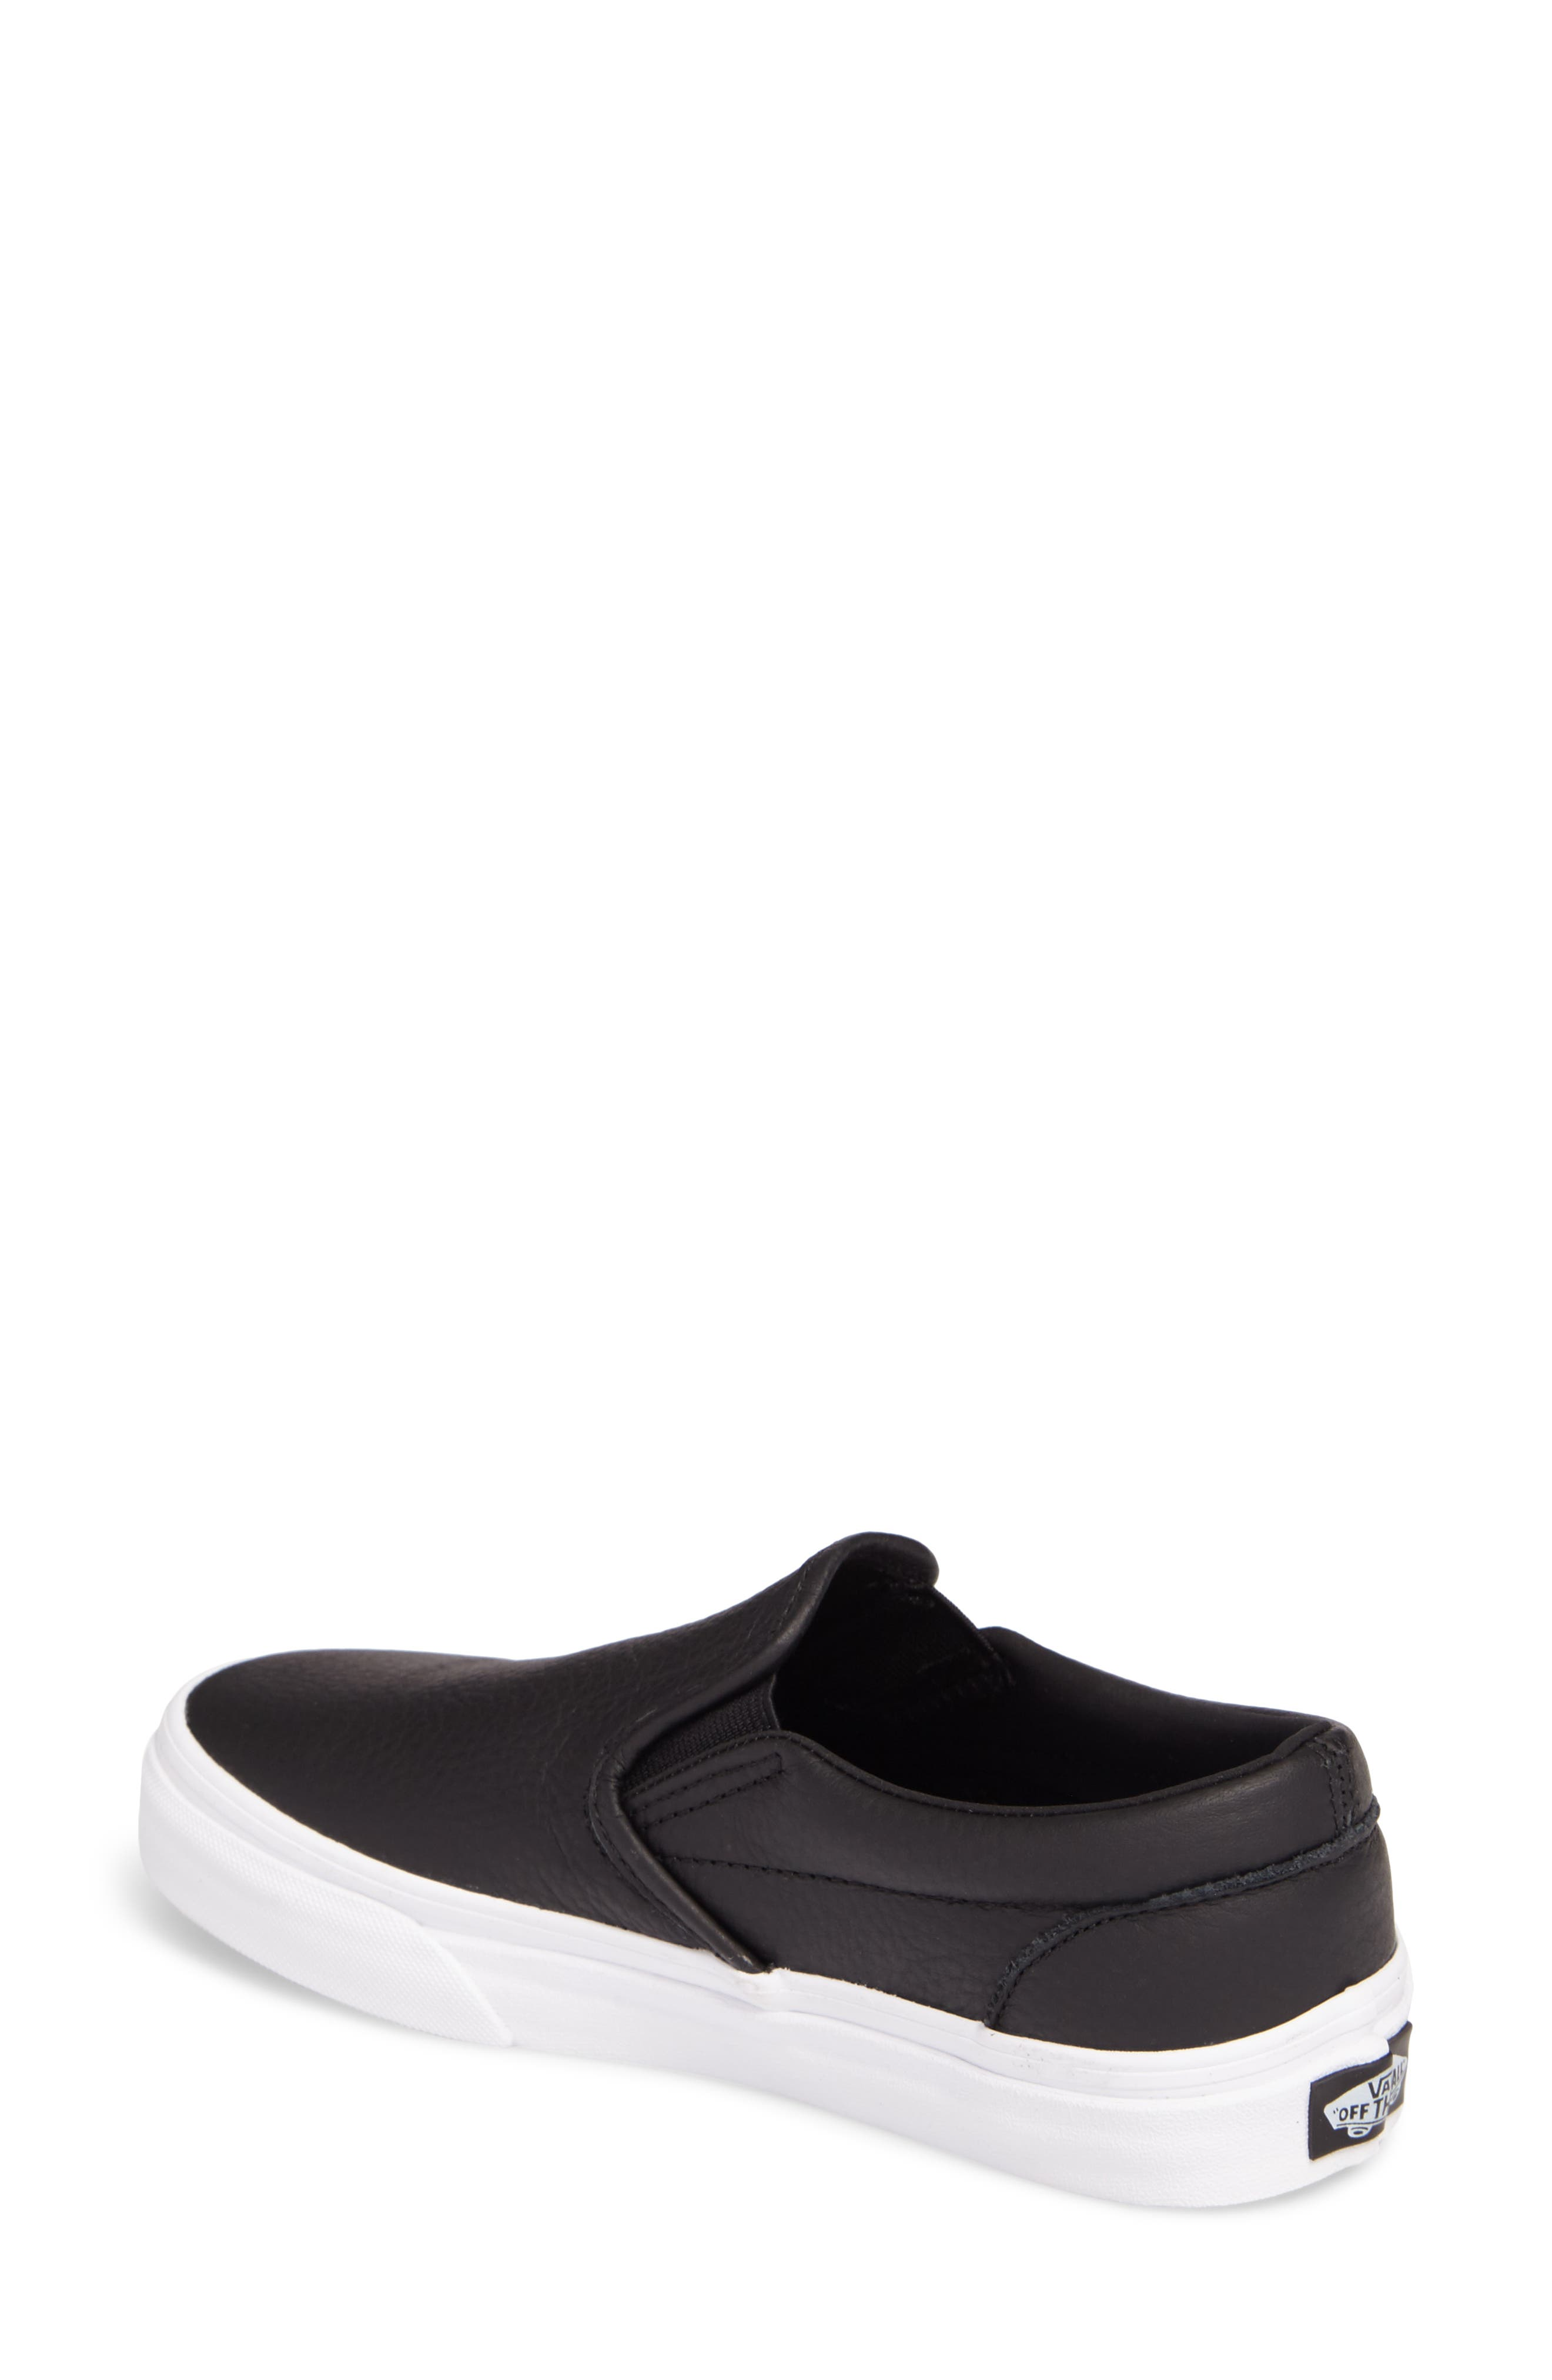 Classic Slip-On Sneaker,                             Alternate thumbnail 2, color,                             Black/ True White